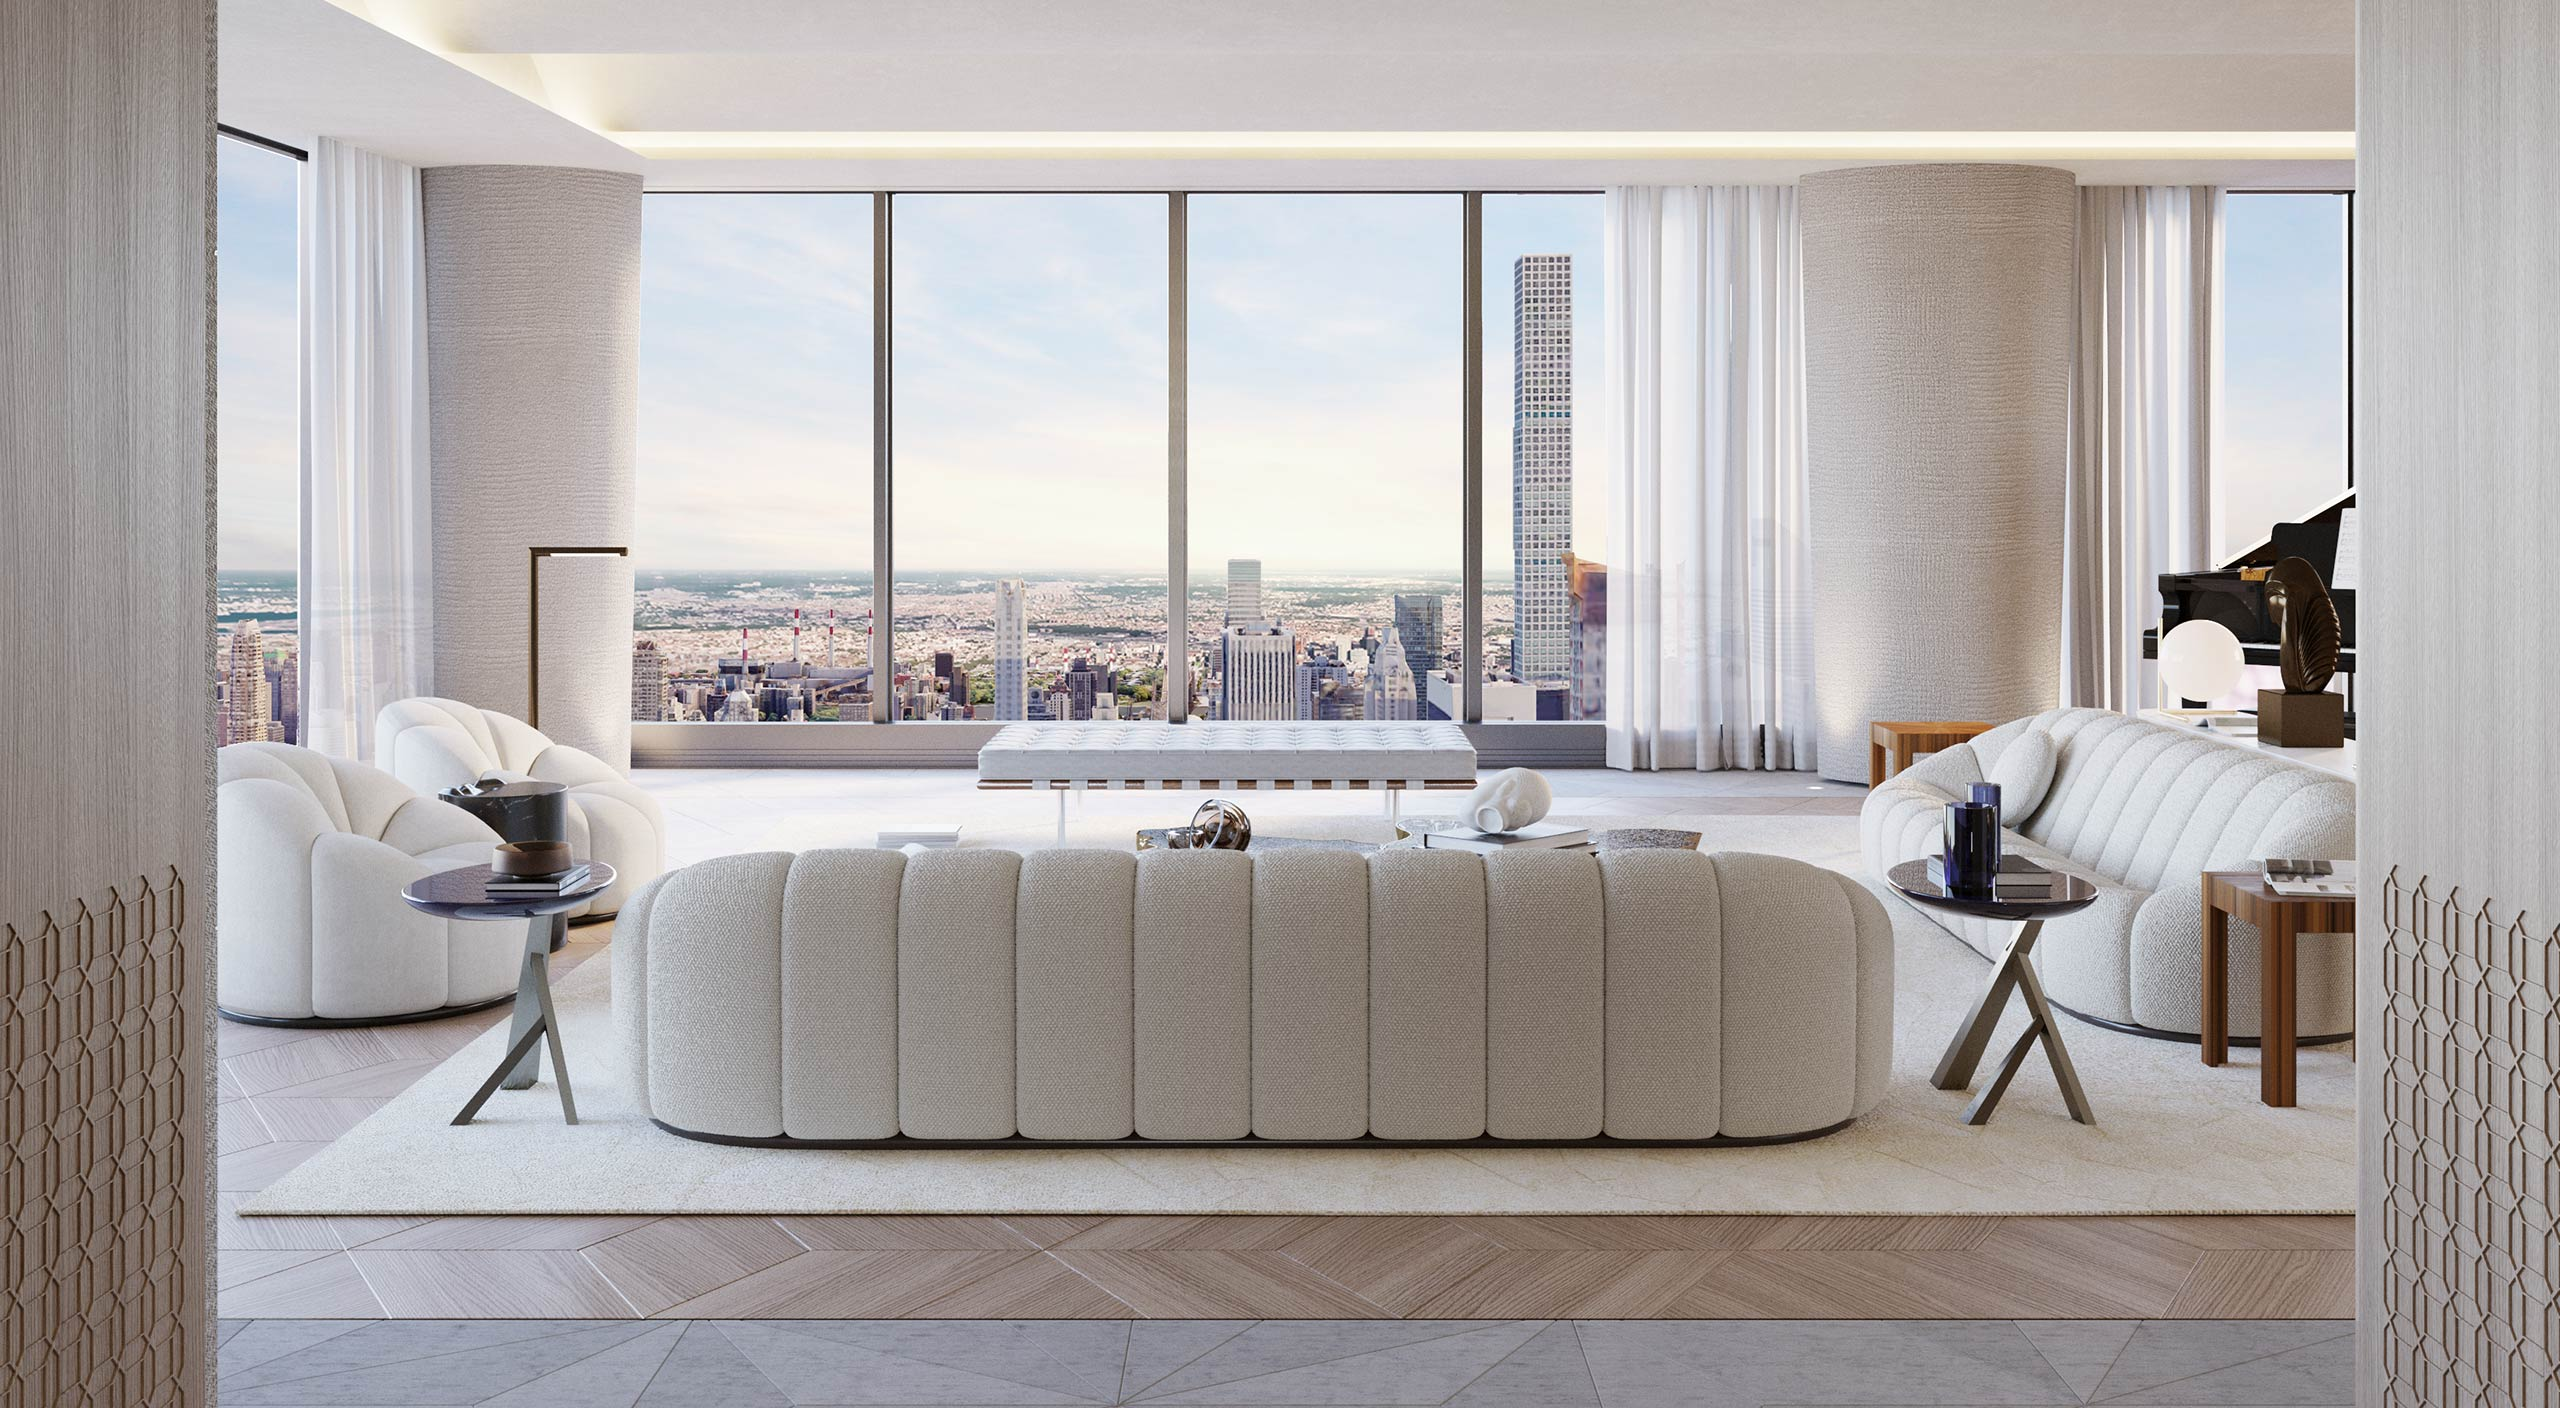 Interior of the Central Park Tower in New York, a luxury design project by Smallbone